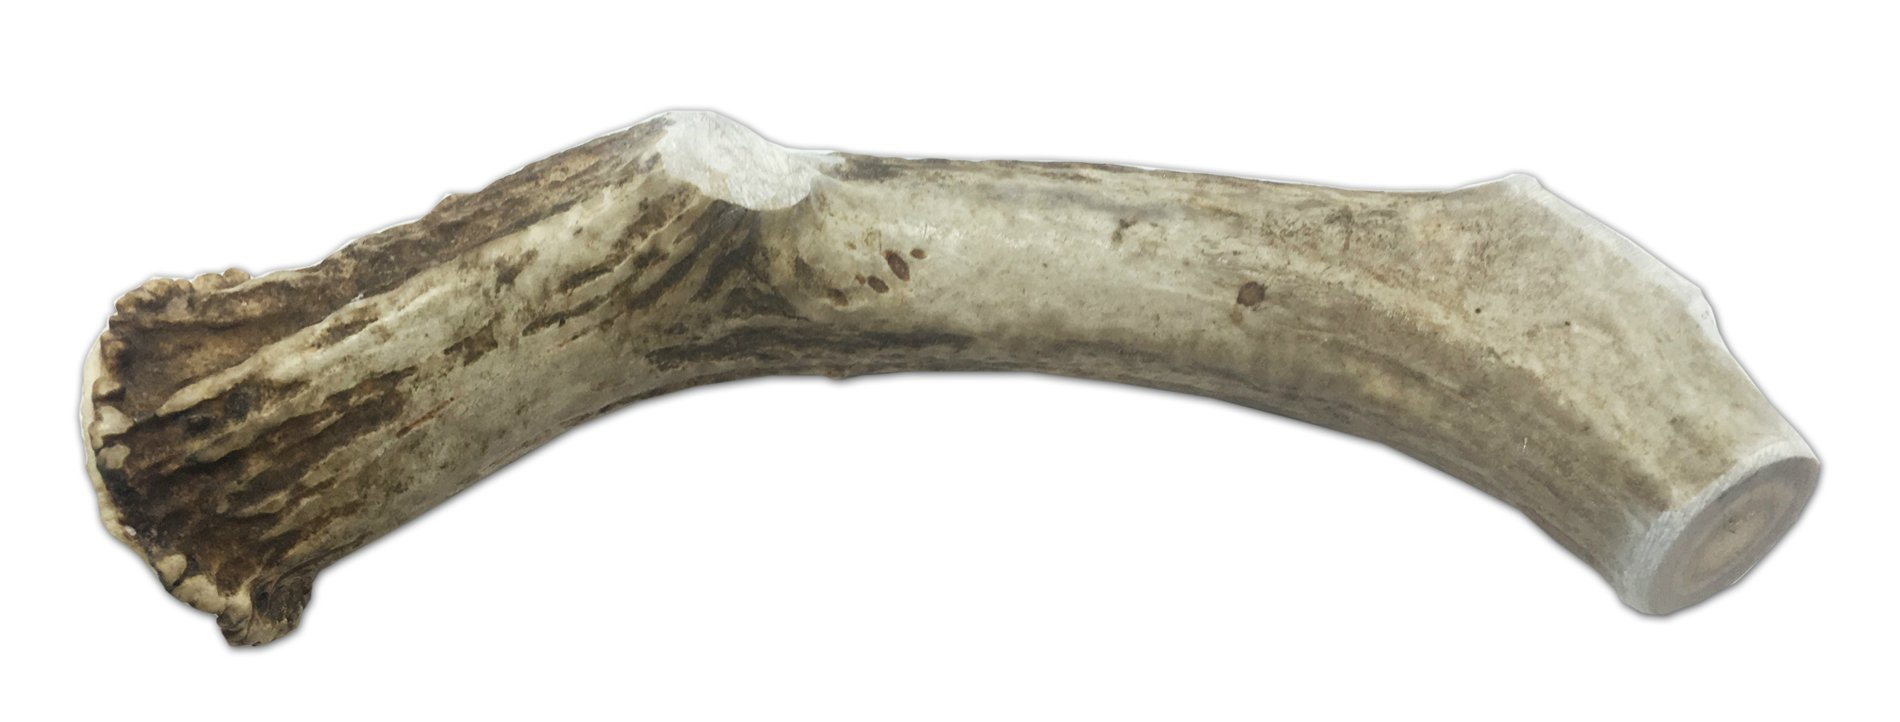 WhiteTail Naturals XX-Large Thick Jumbo Deer Antler Dog Chew 8-10 Inches Long